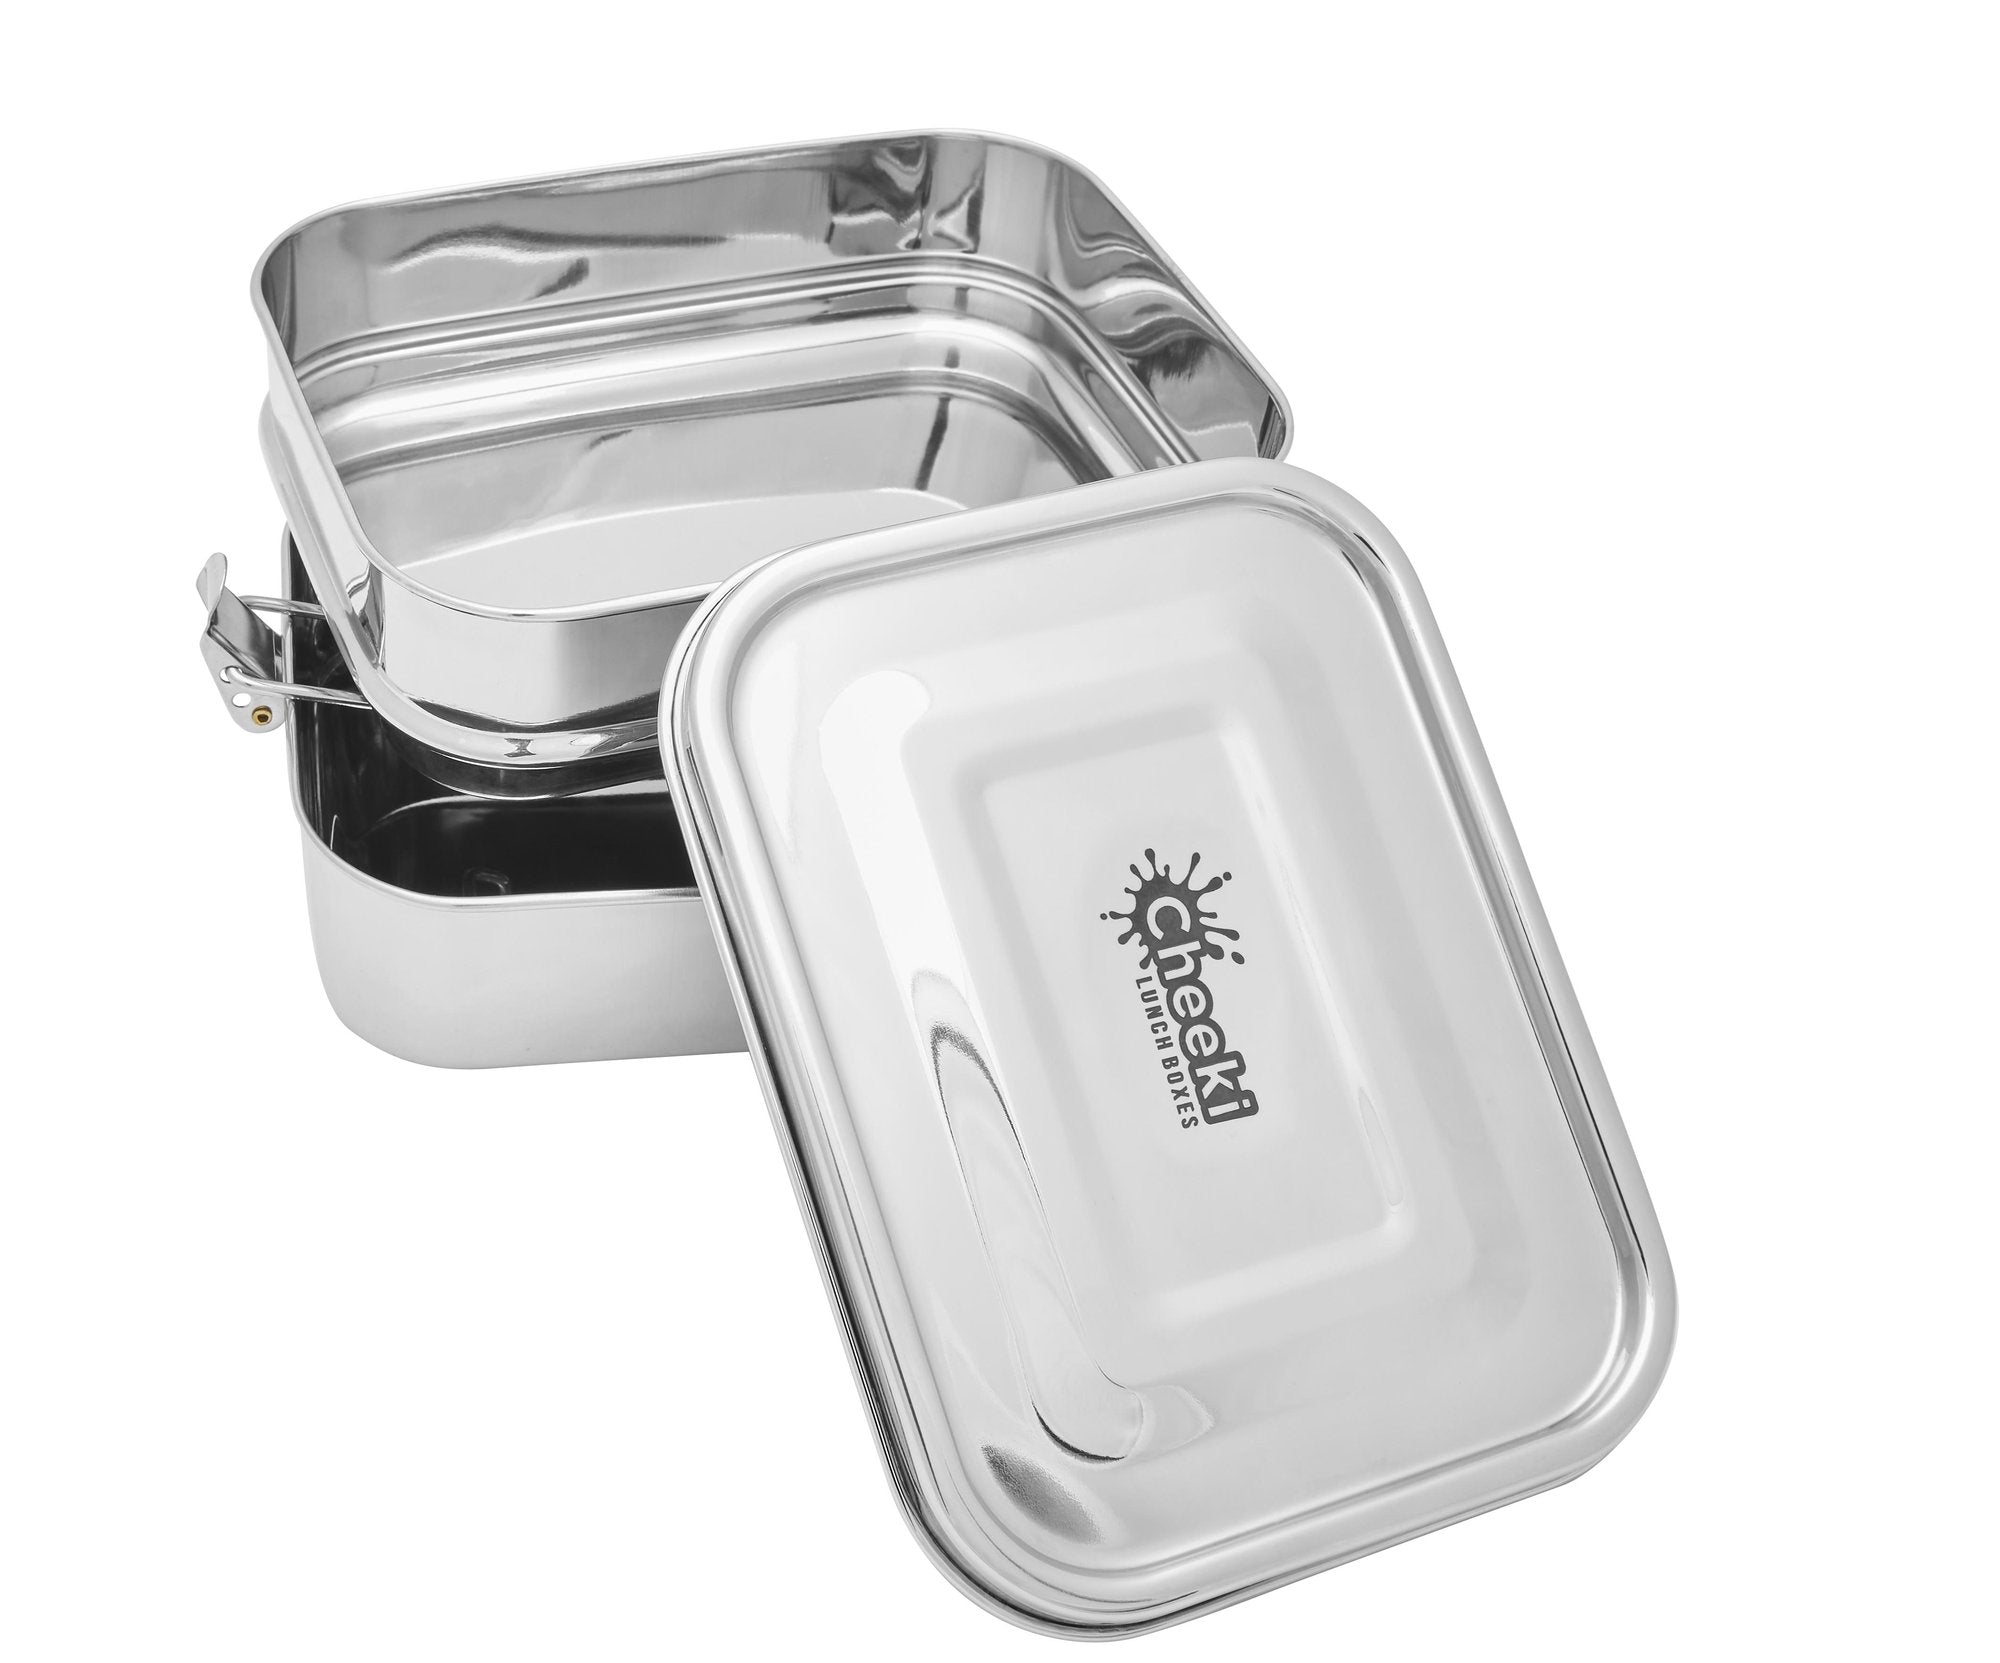 Cheeki Lunch Box Double Stacker